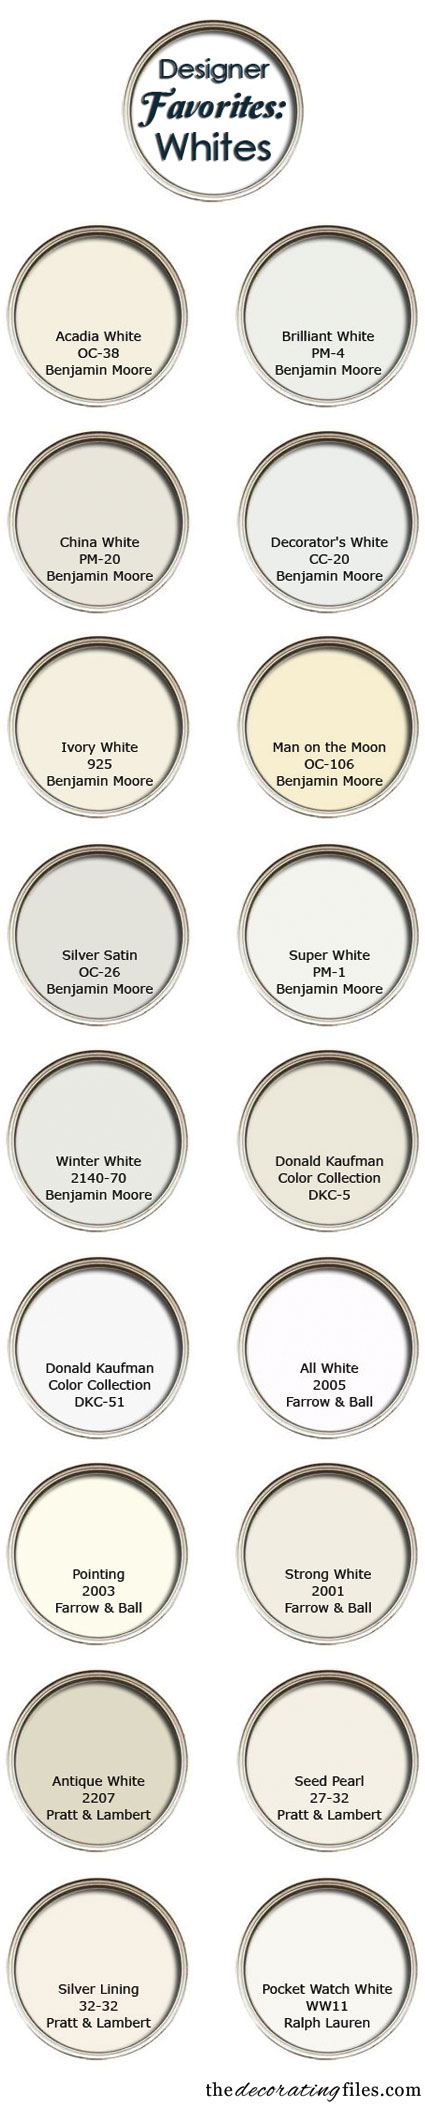 White Paint Colors: More Favorite Neutrals from Designers